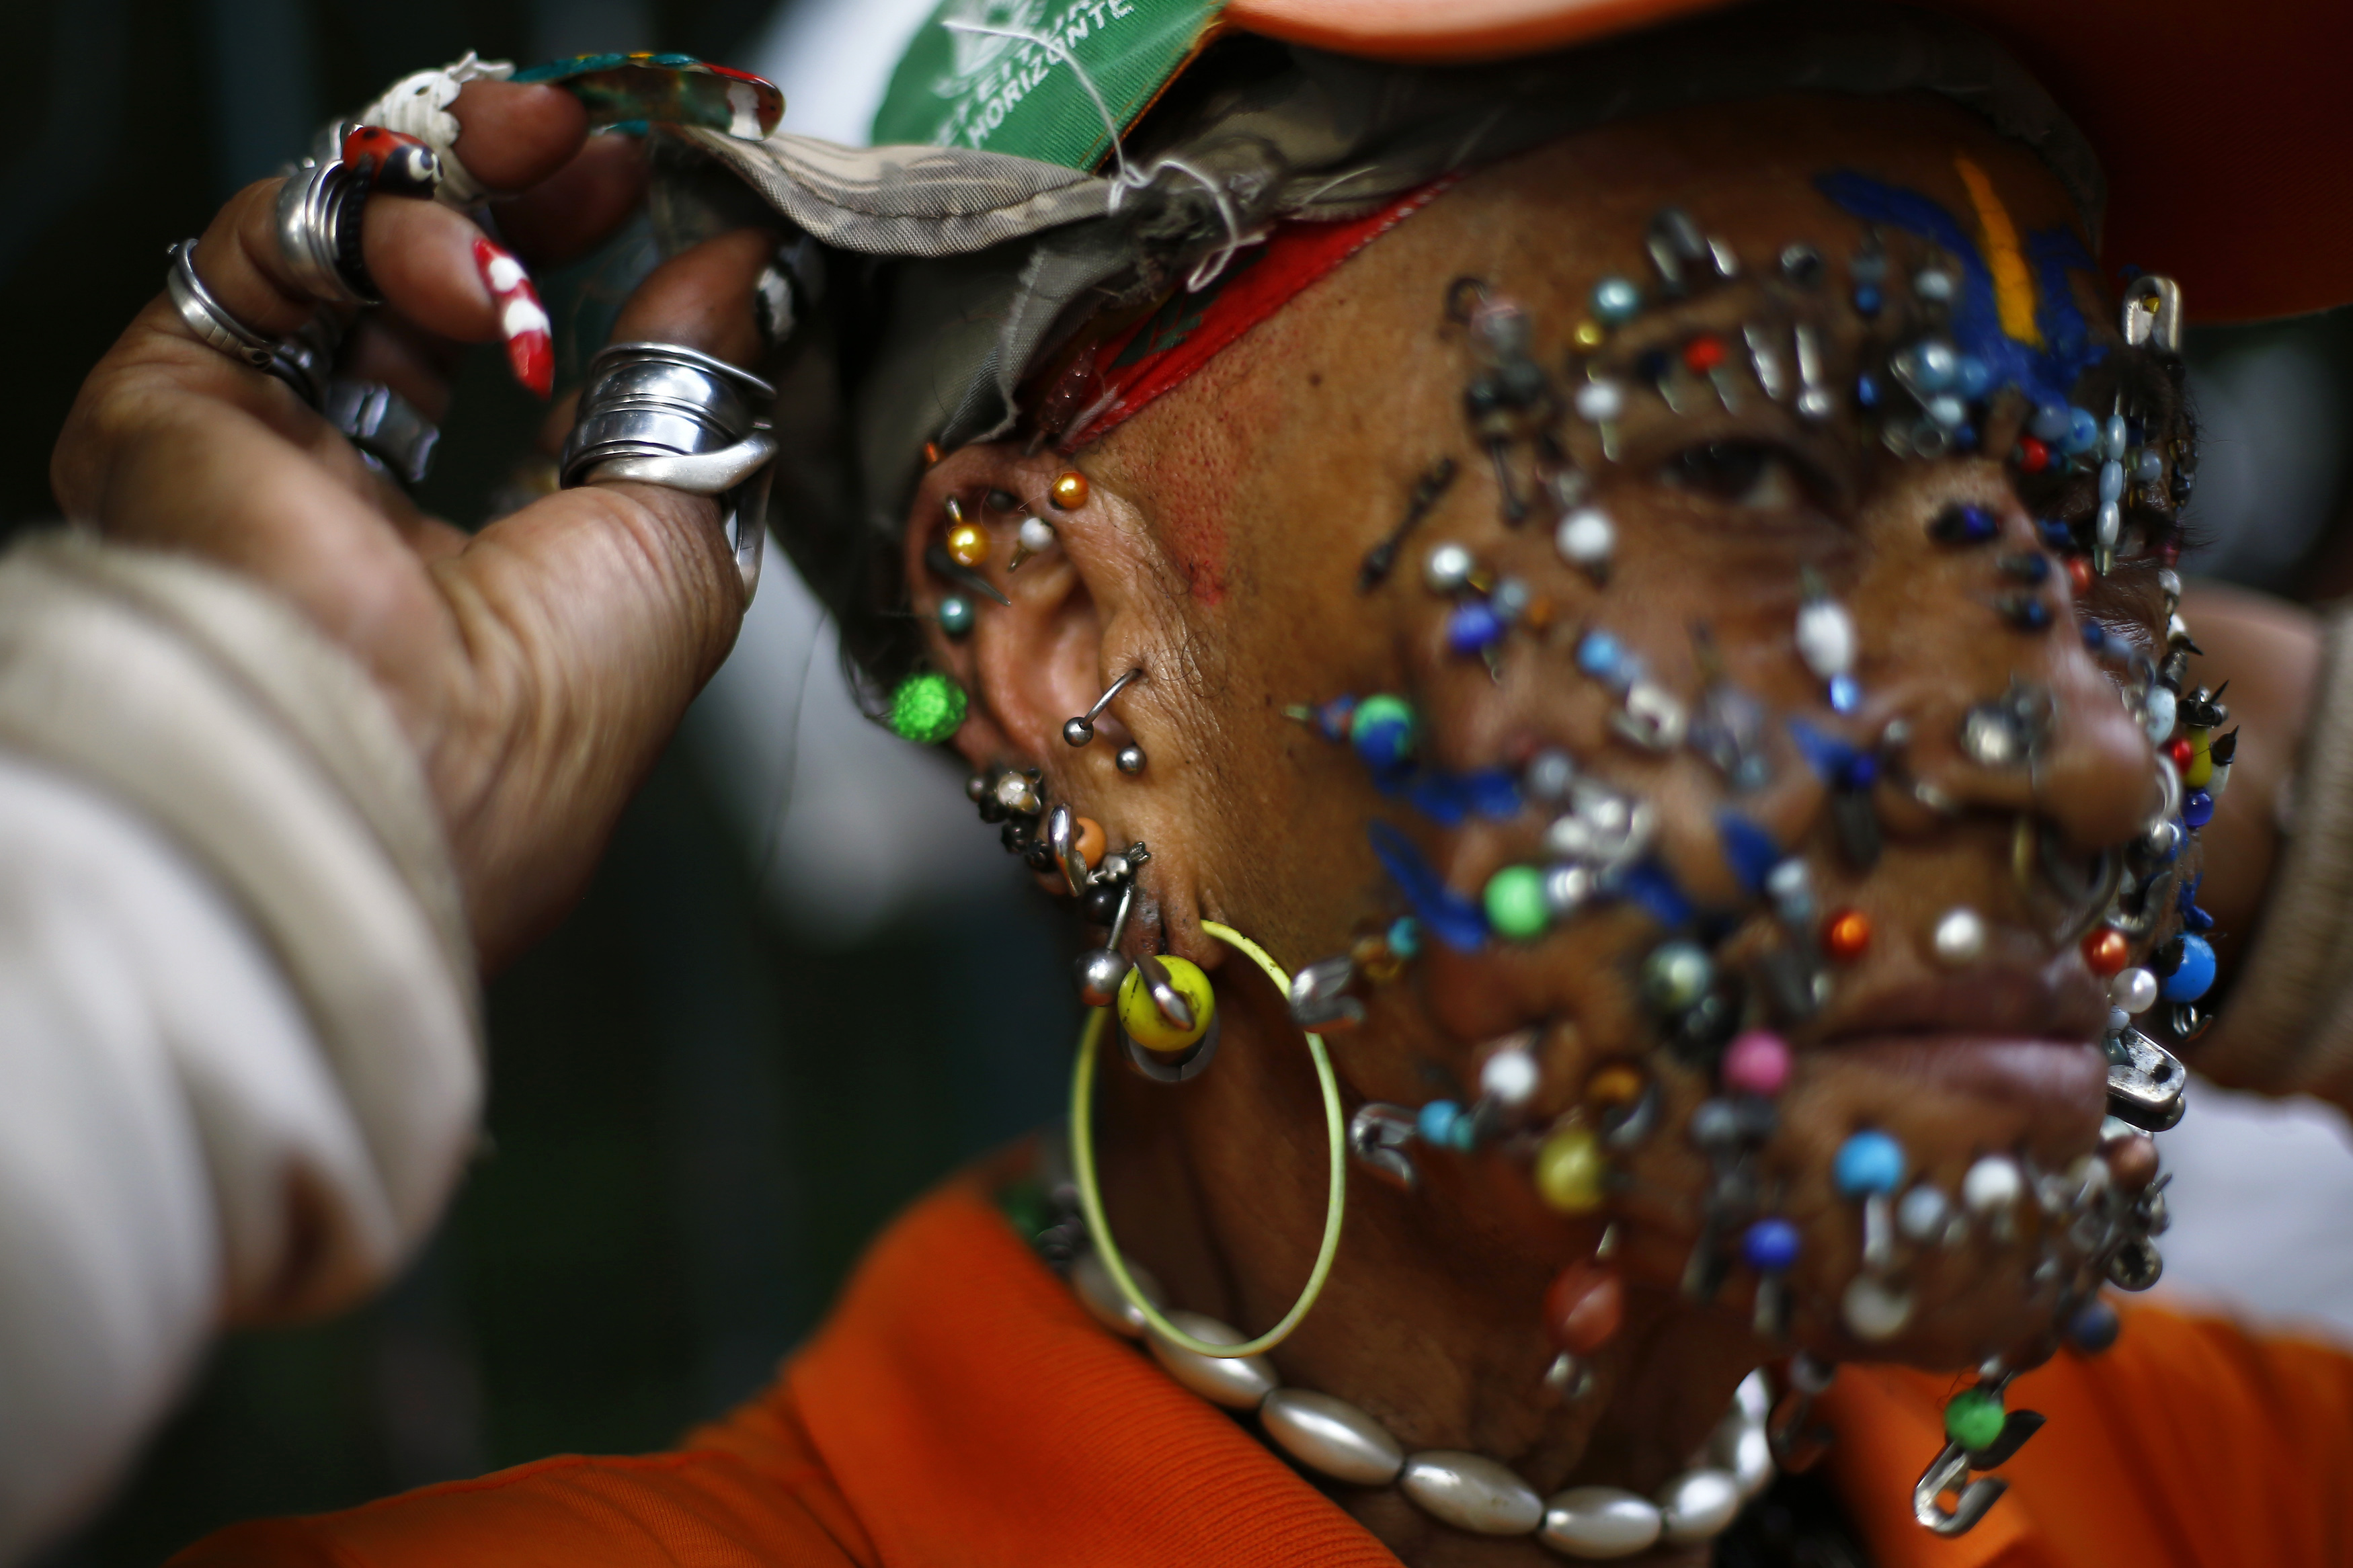 A street cleaner and fan of the Brazilian national soccer team shows her facial piercings on a street in Belo Horizonte